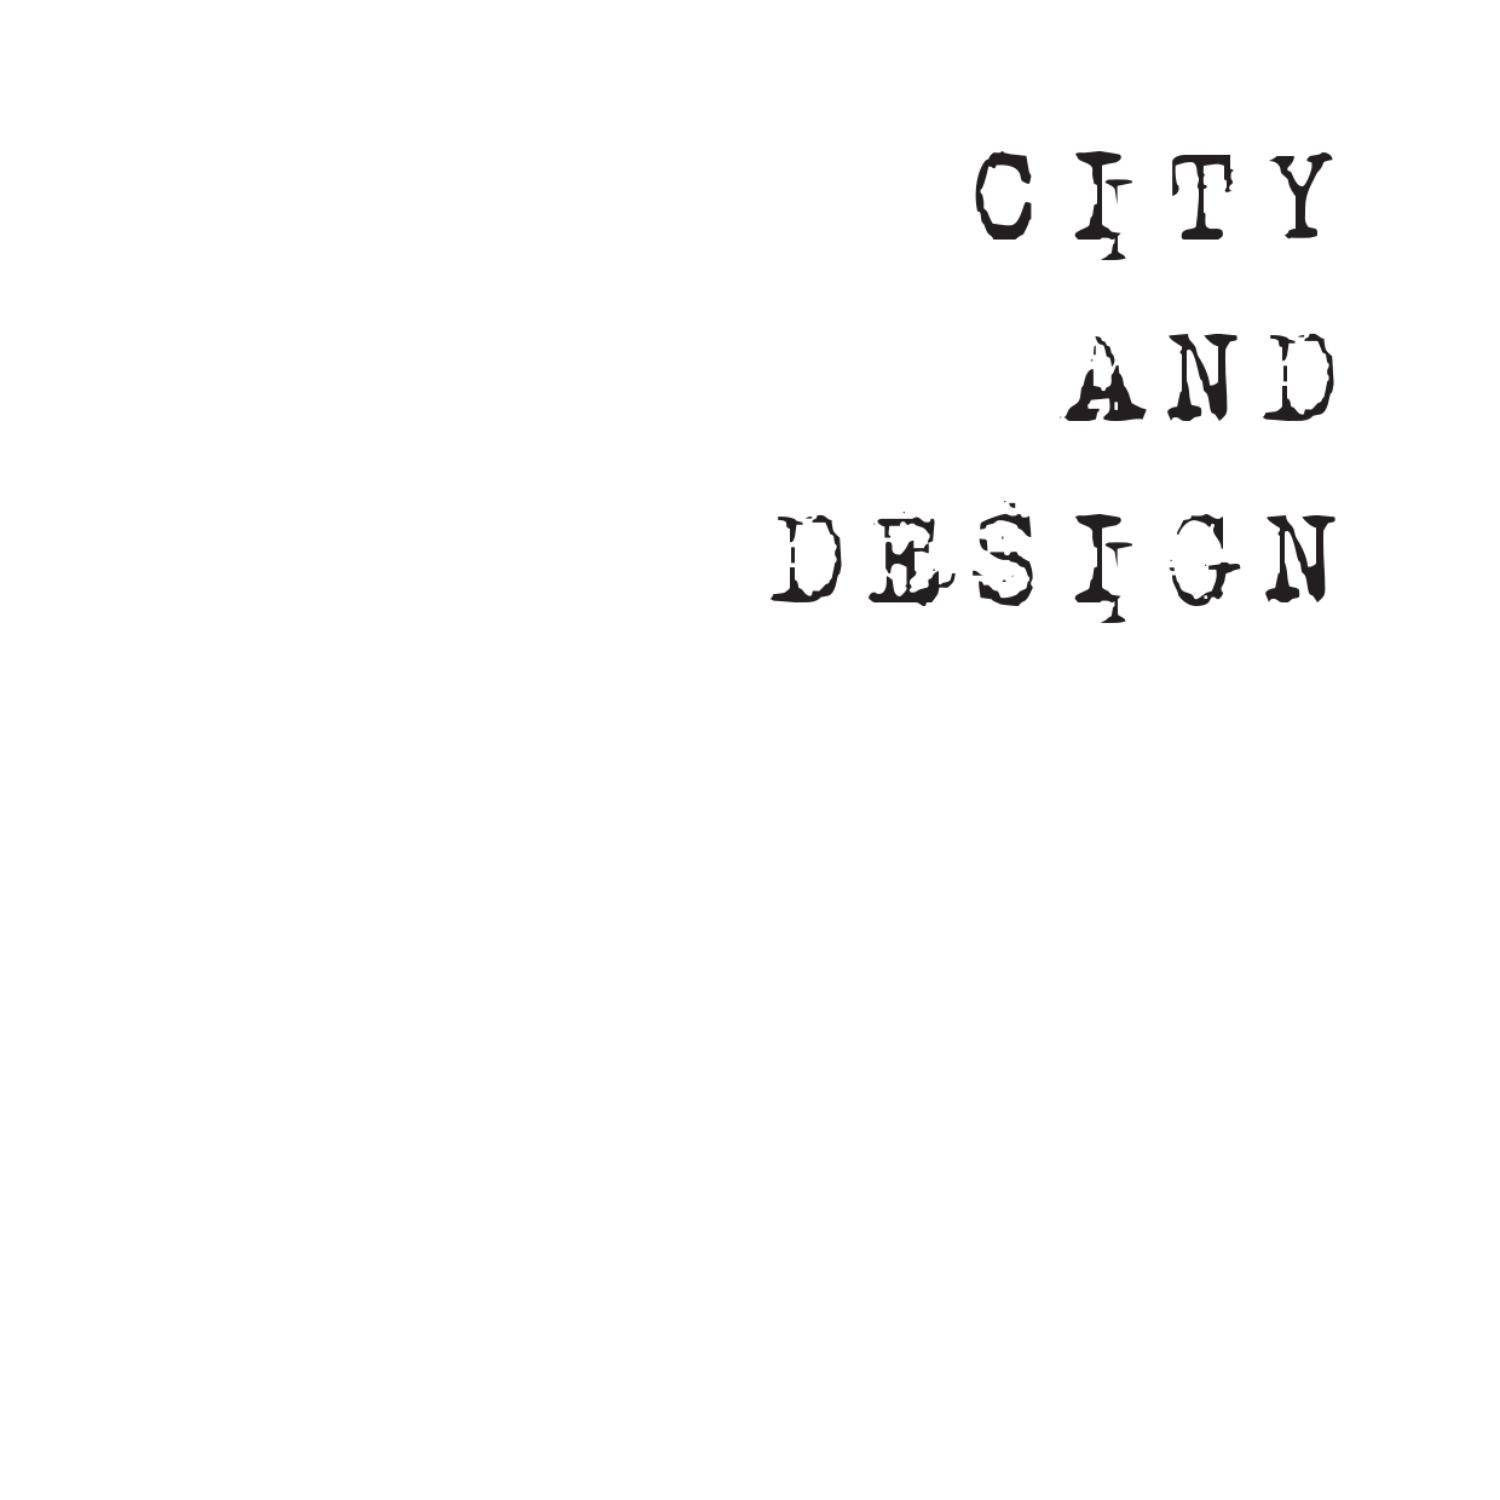 City And Design By Public Art & Public Space Issuu